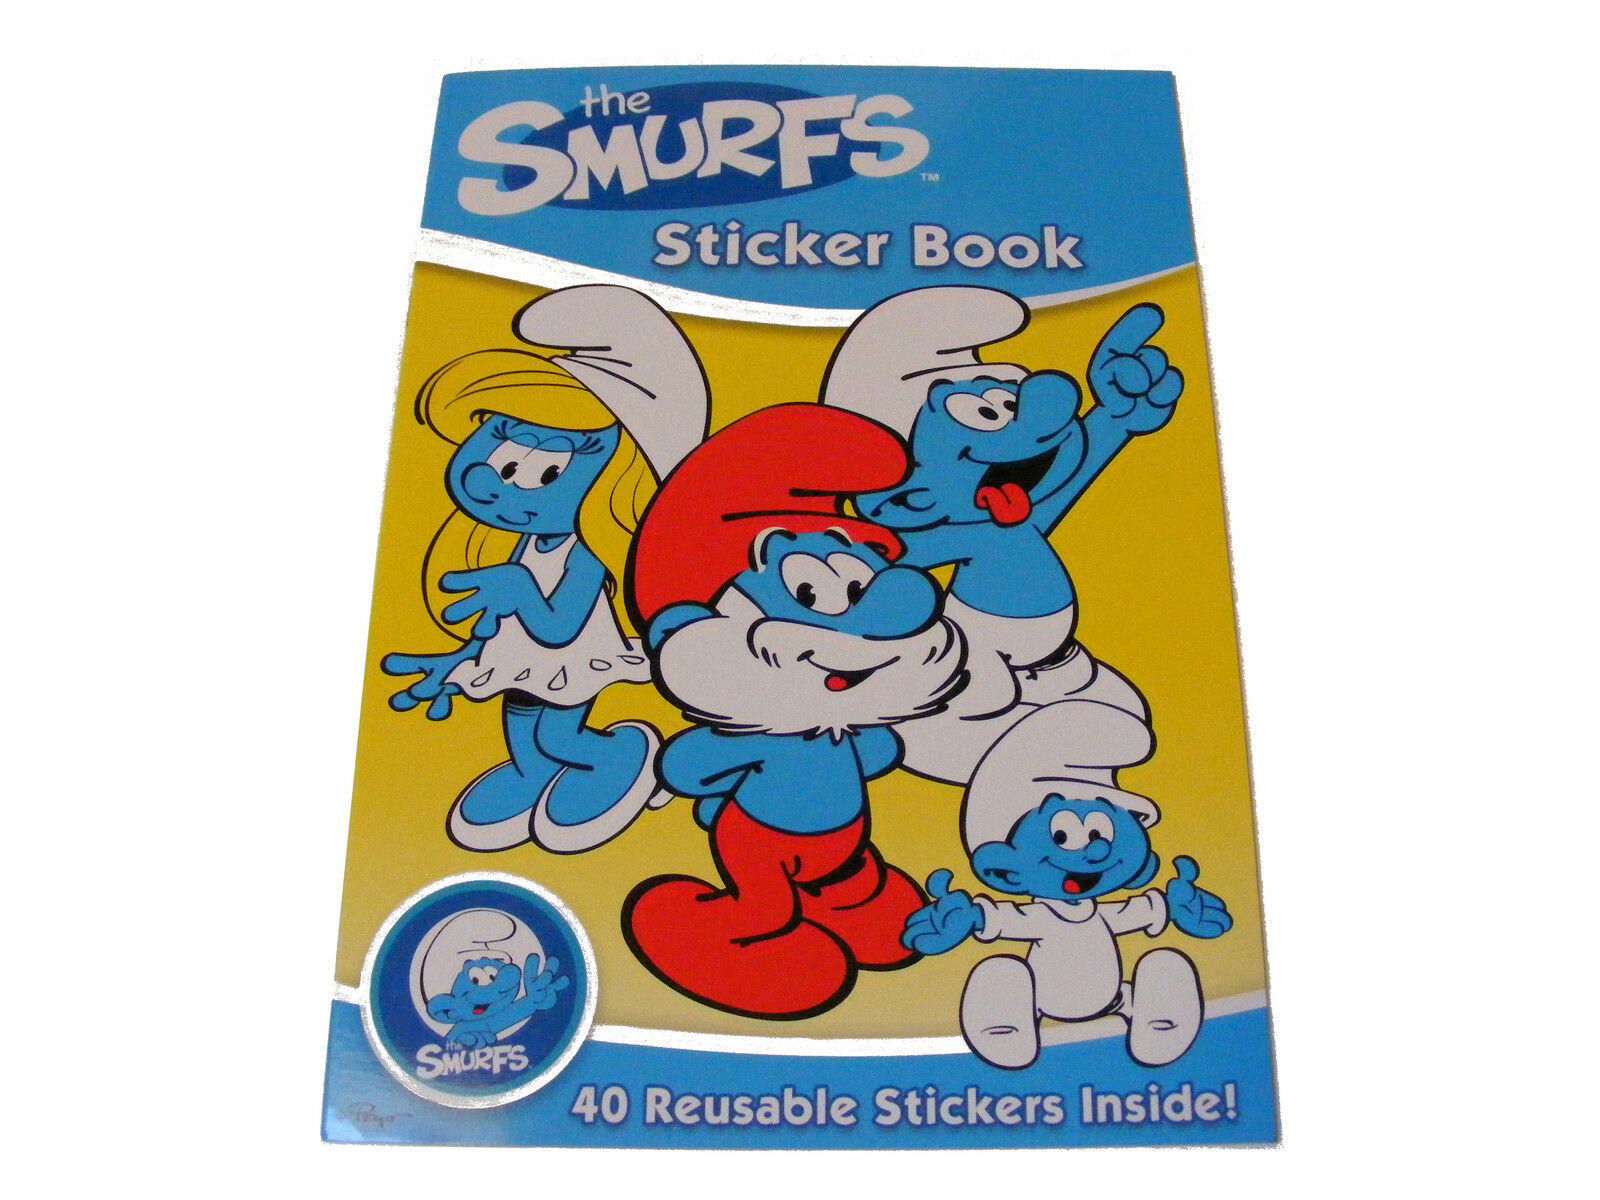 CHILDRENS KIDS THE SMURFS STICKER BOOK WITH 40 REUSABLE STICKERS